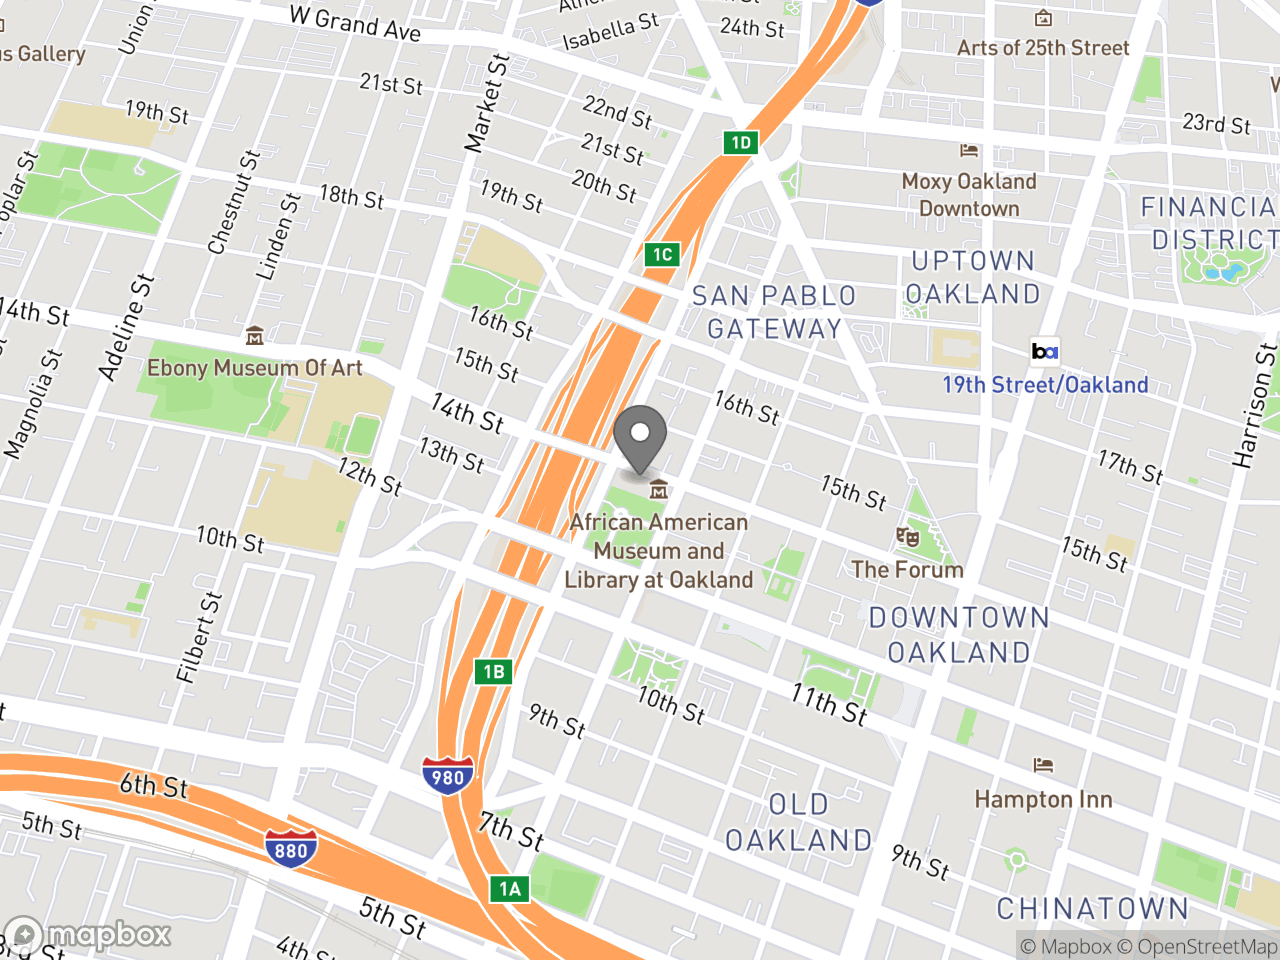 Map location for 12-2-19 PAAC Meeting, located at 1 Frank H. Ogawa Plaza, Hearing Room 4 in Oakland, CA 94612